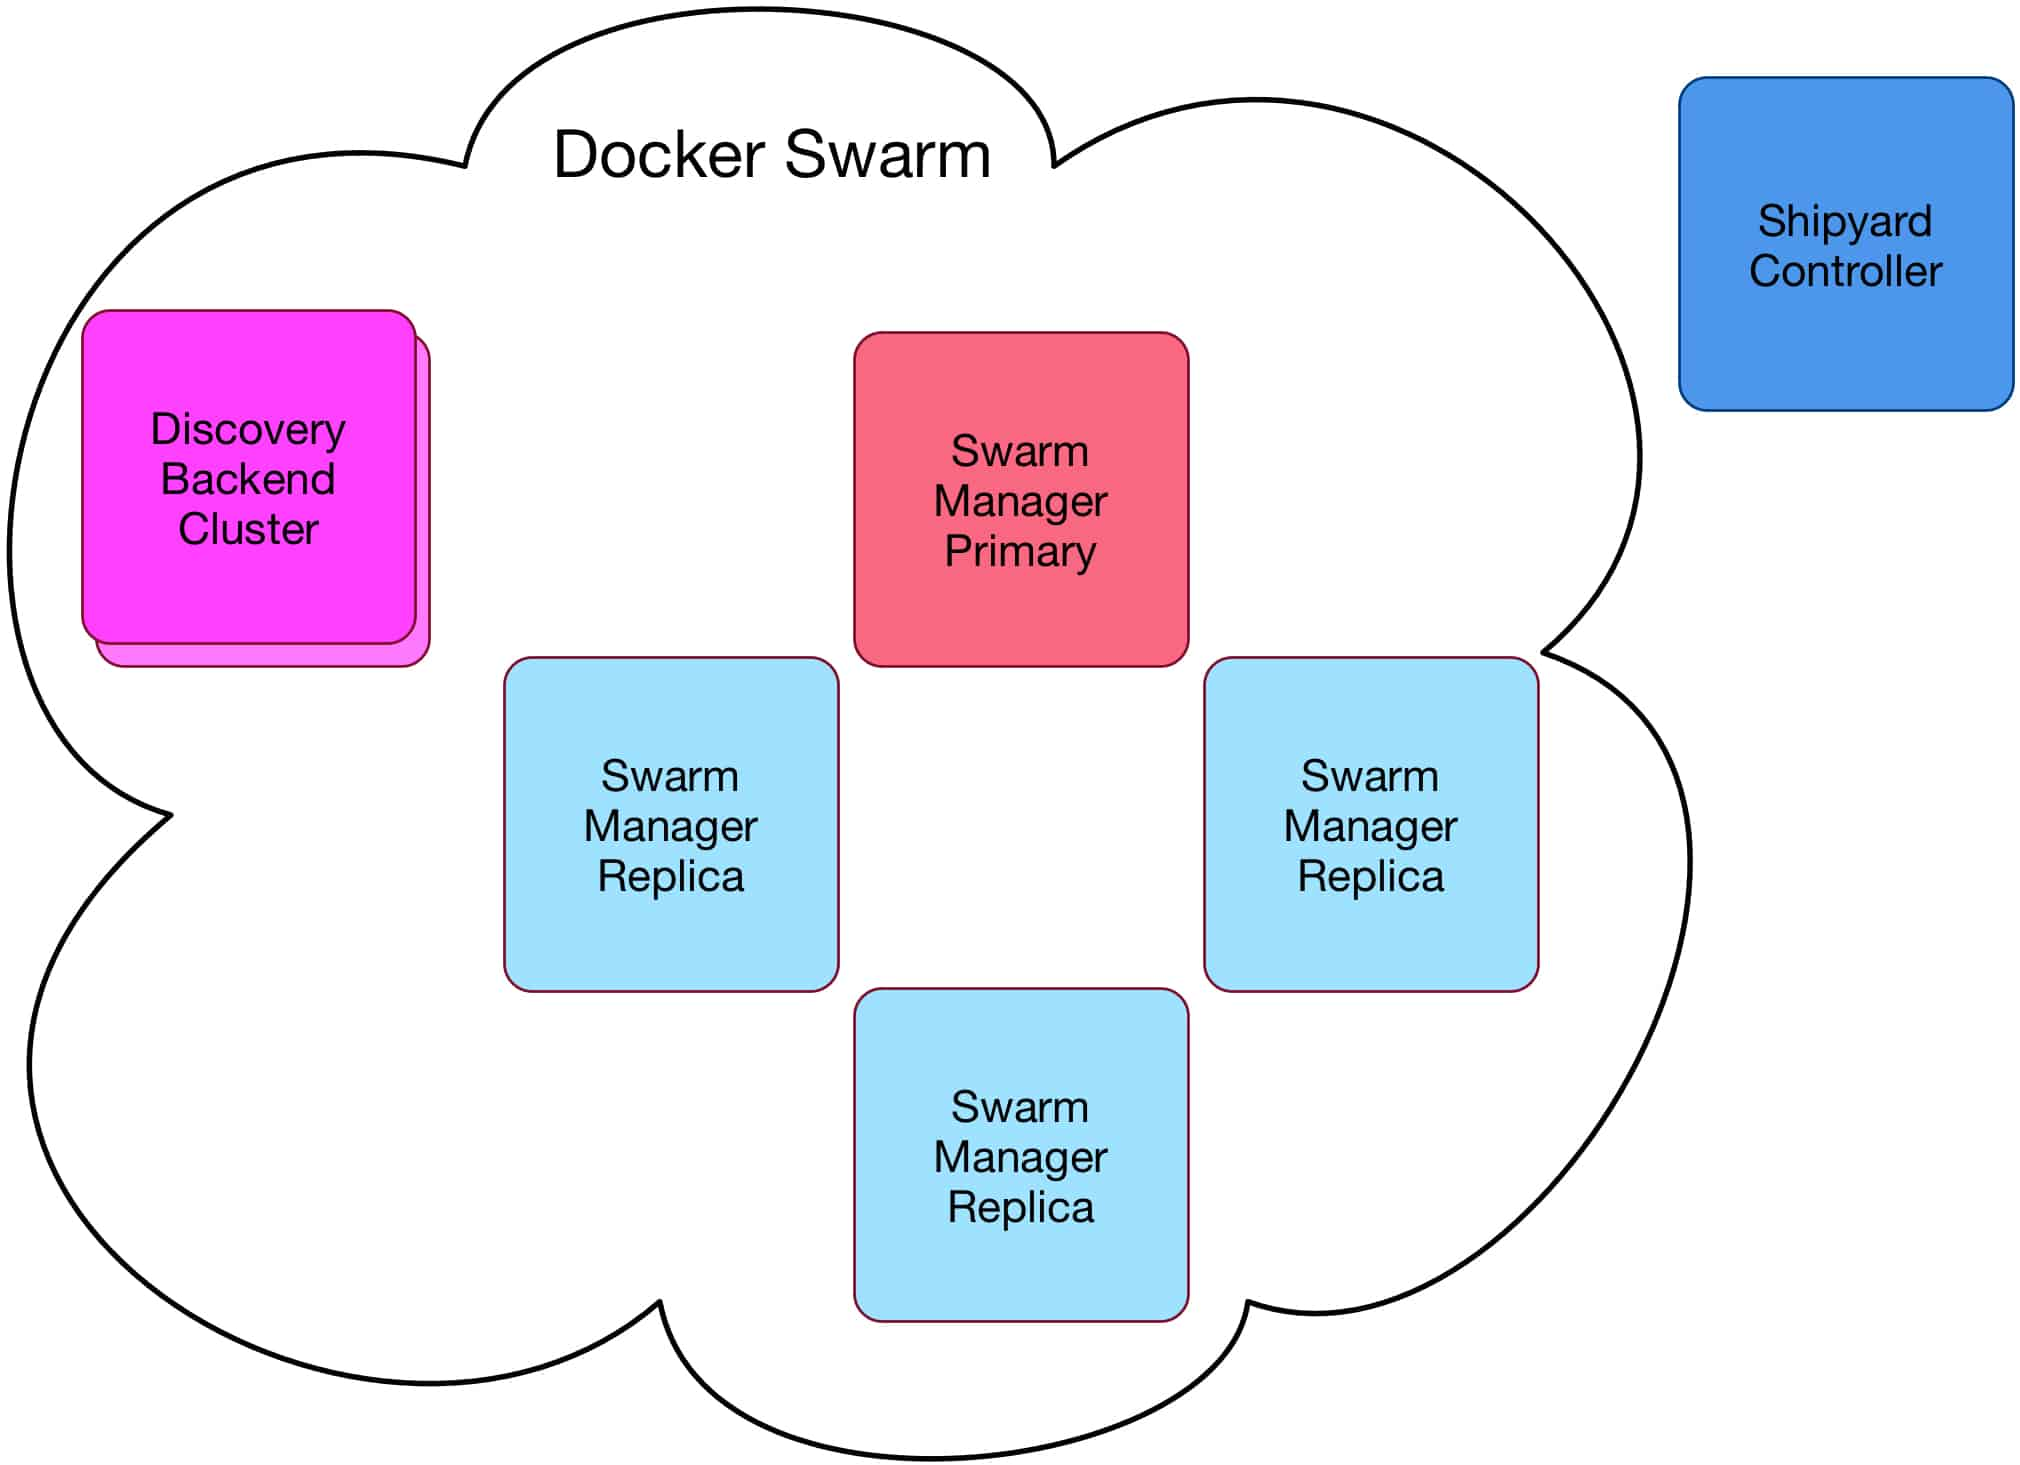 Managing Containers – Shipyard – The Blog of Ivan Krizsan